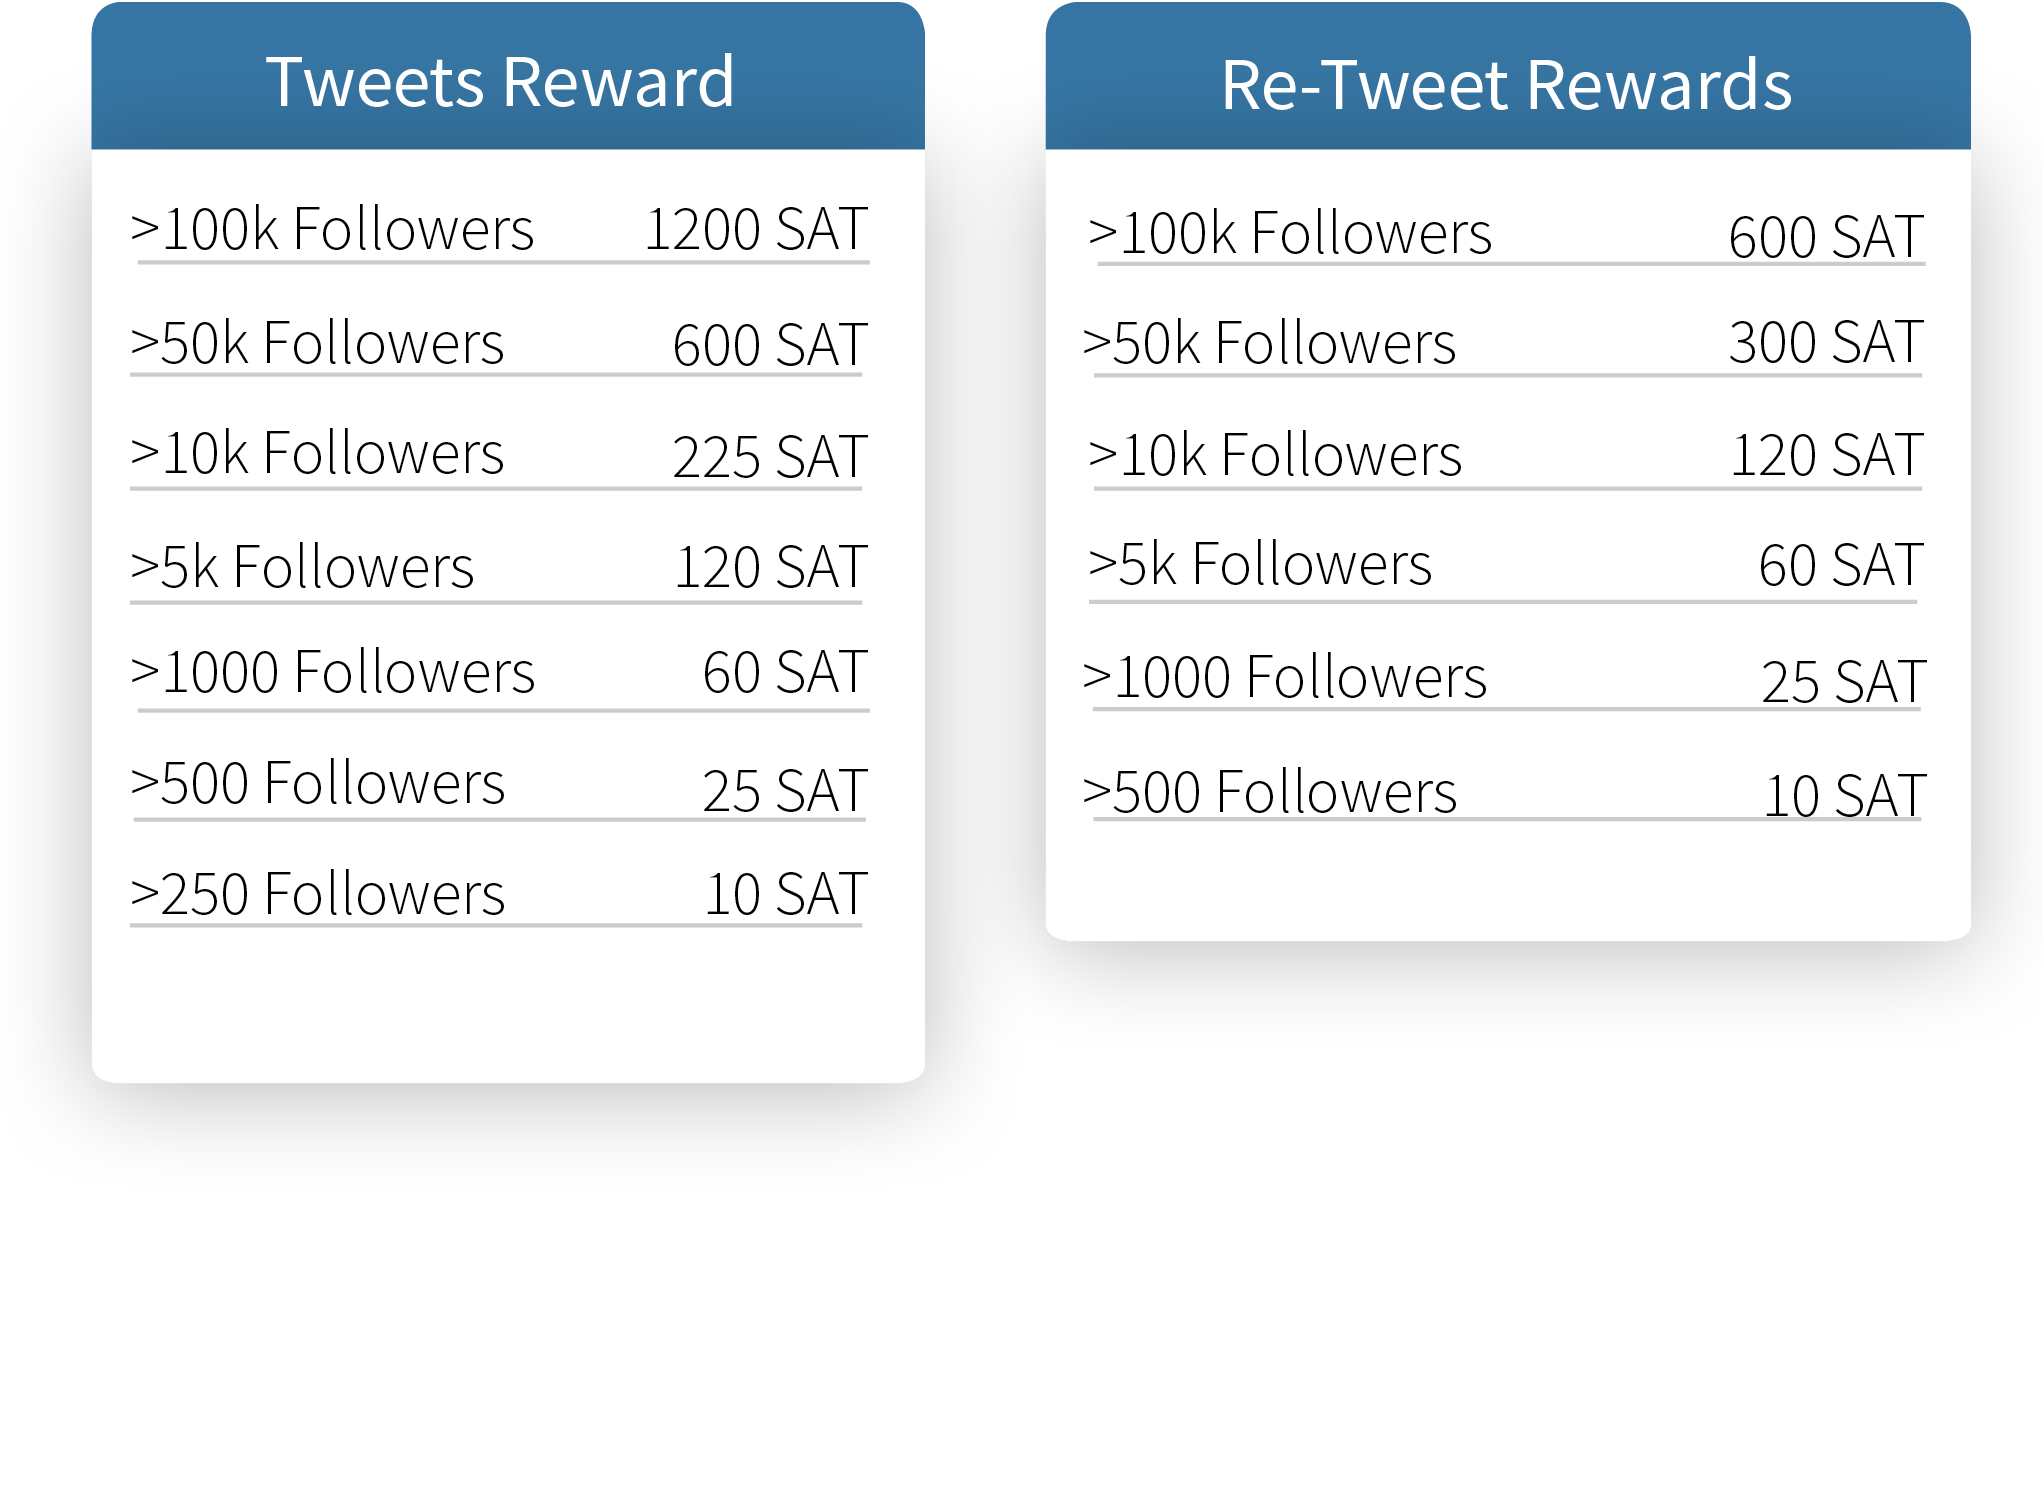 Tweets Reward